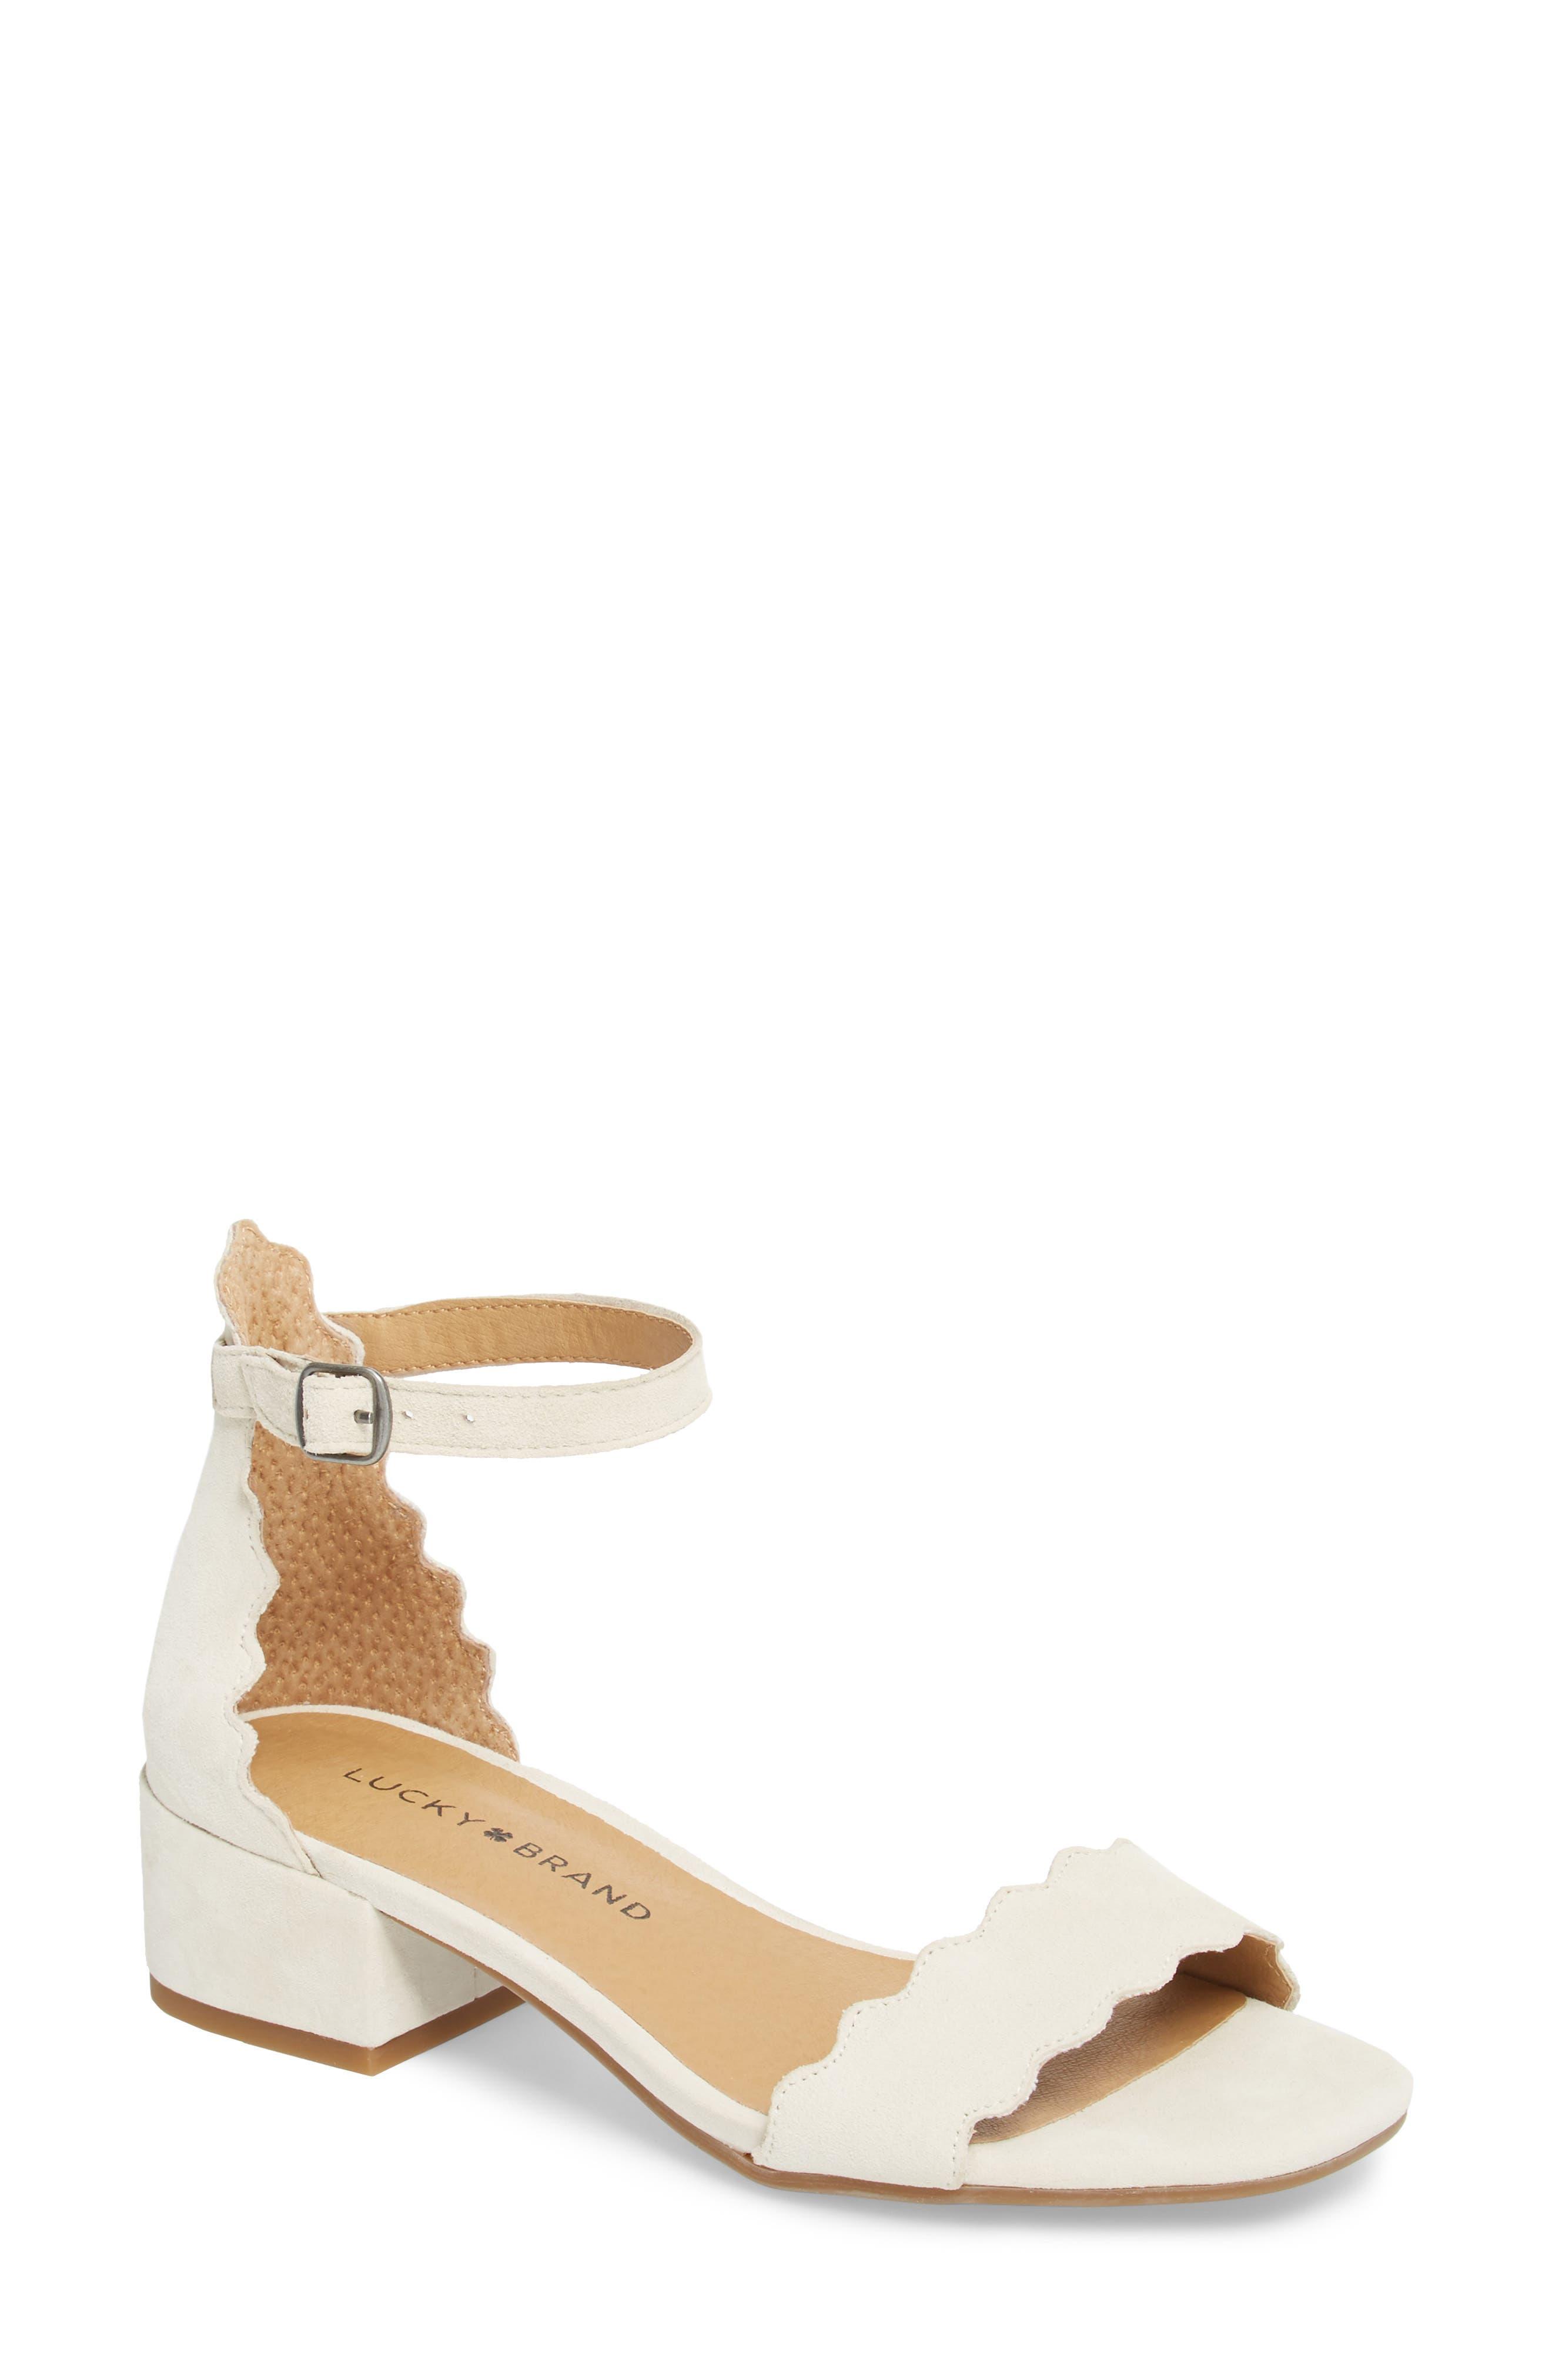 Main Image - Lucky Brand Norreys Sandal (Women)